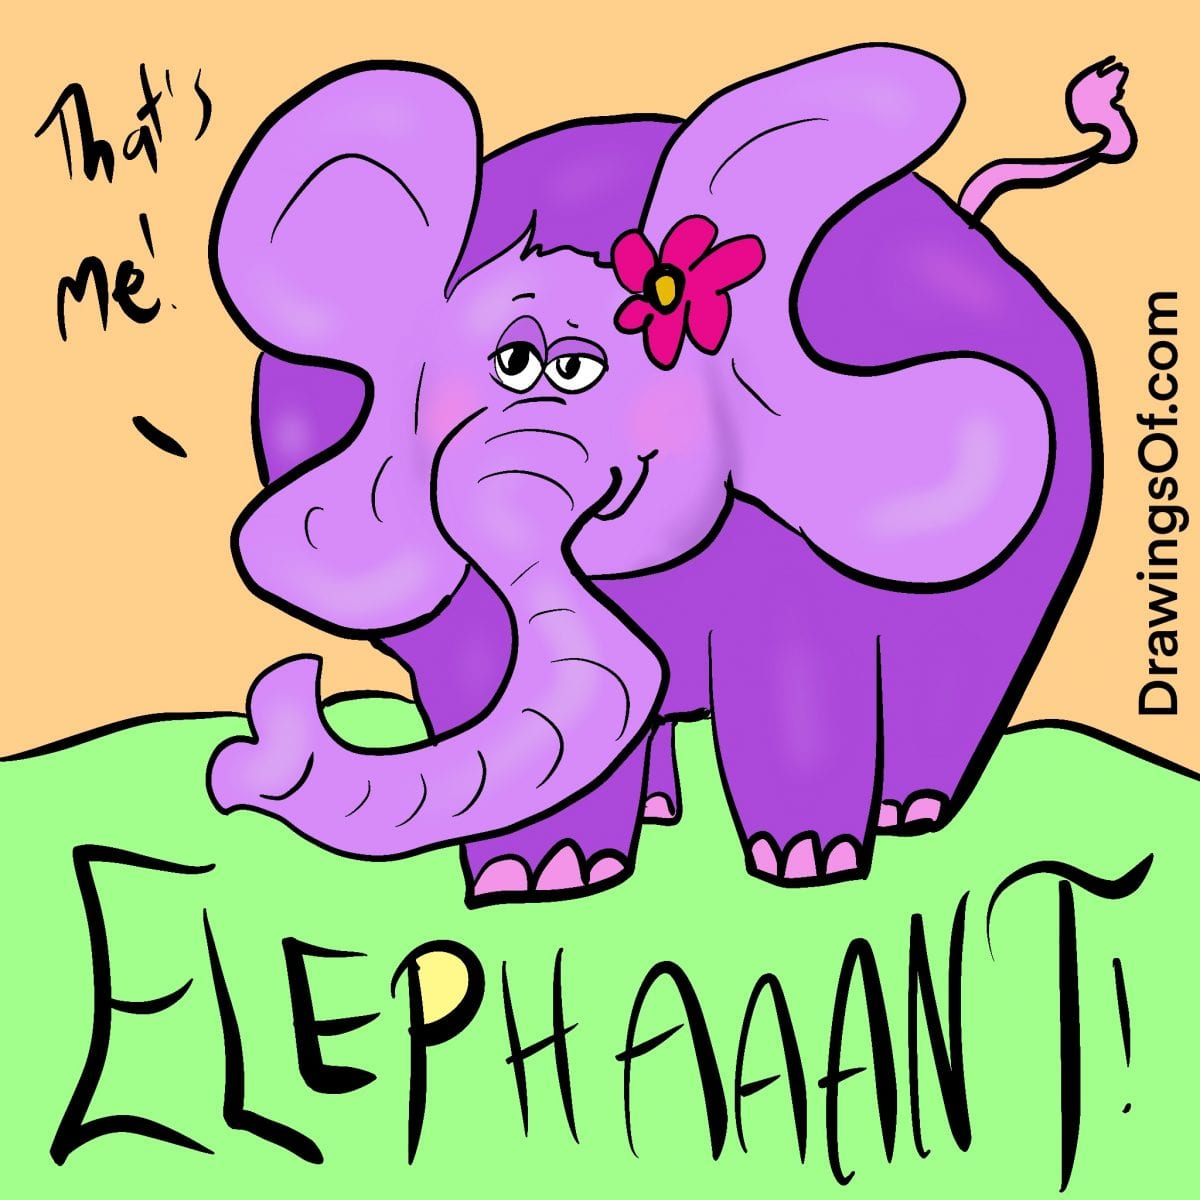 Happy purple elephant cute cartoon drawing with flower behind its ear